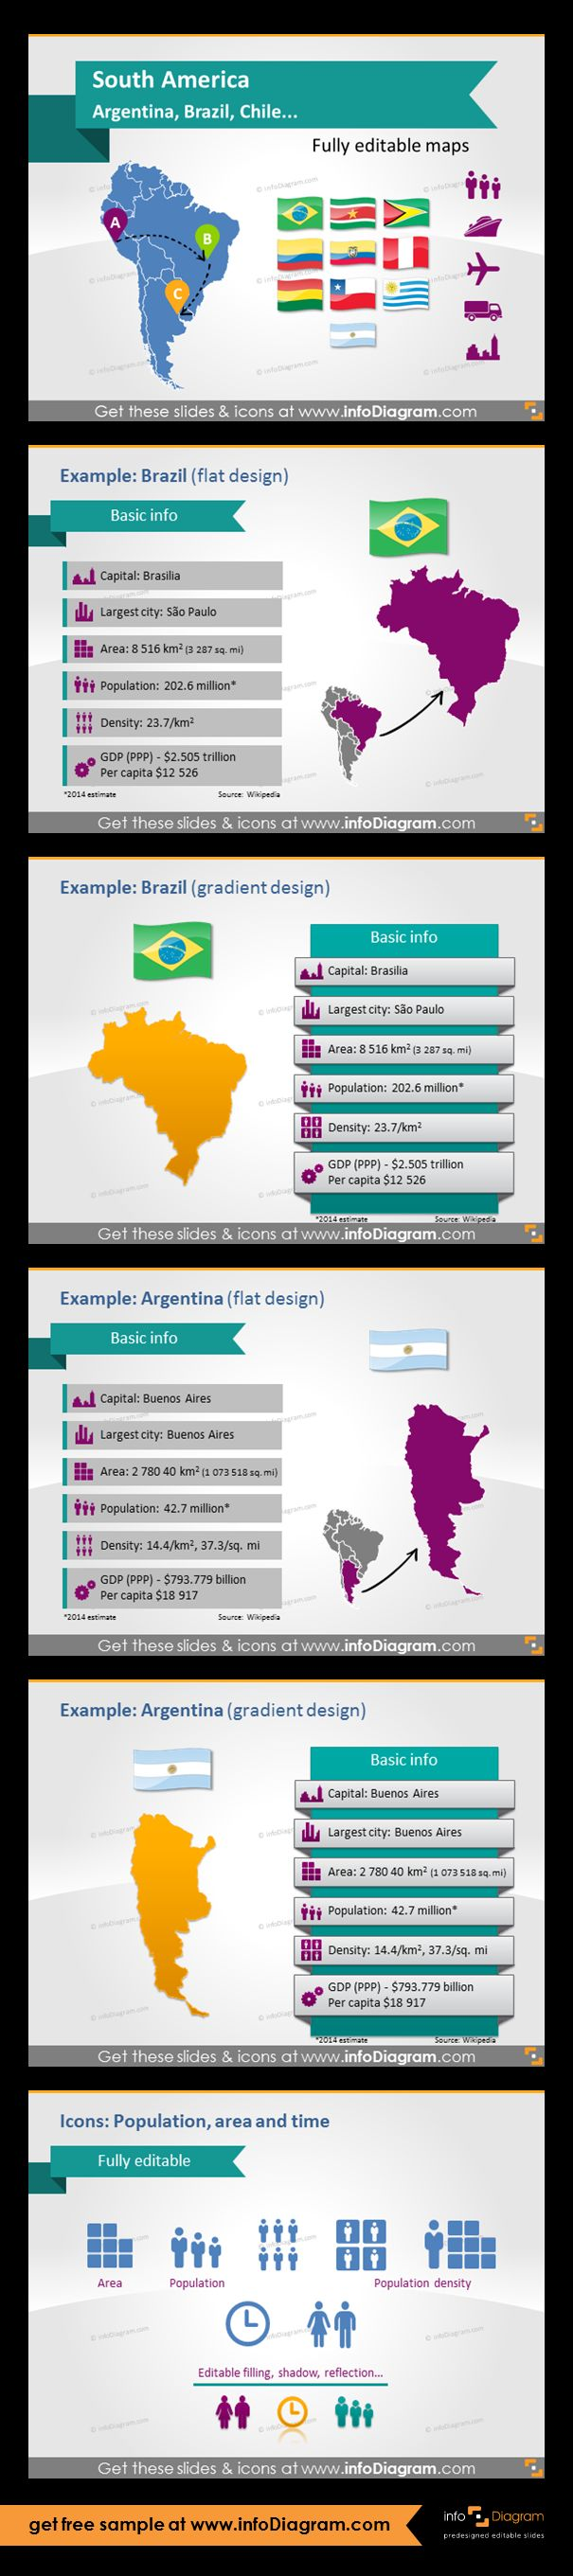 South America countries - editable PowerPoint maps, localization and transport icons, country statistics. Fully editable maps, icons, arrows. Brazil and Argentina with country statistics data: Population, Density, Area, GDP, Largest city, Capital. Population, area and time symbols.